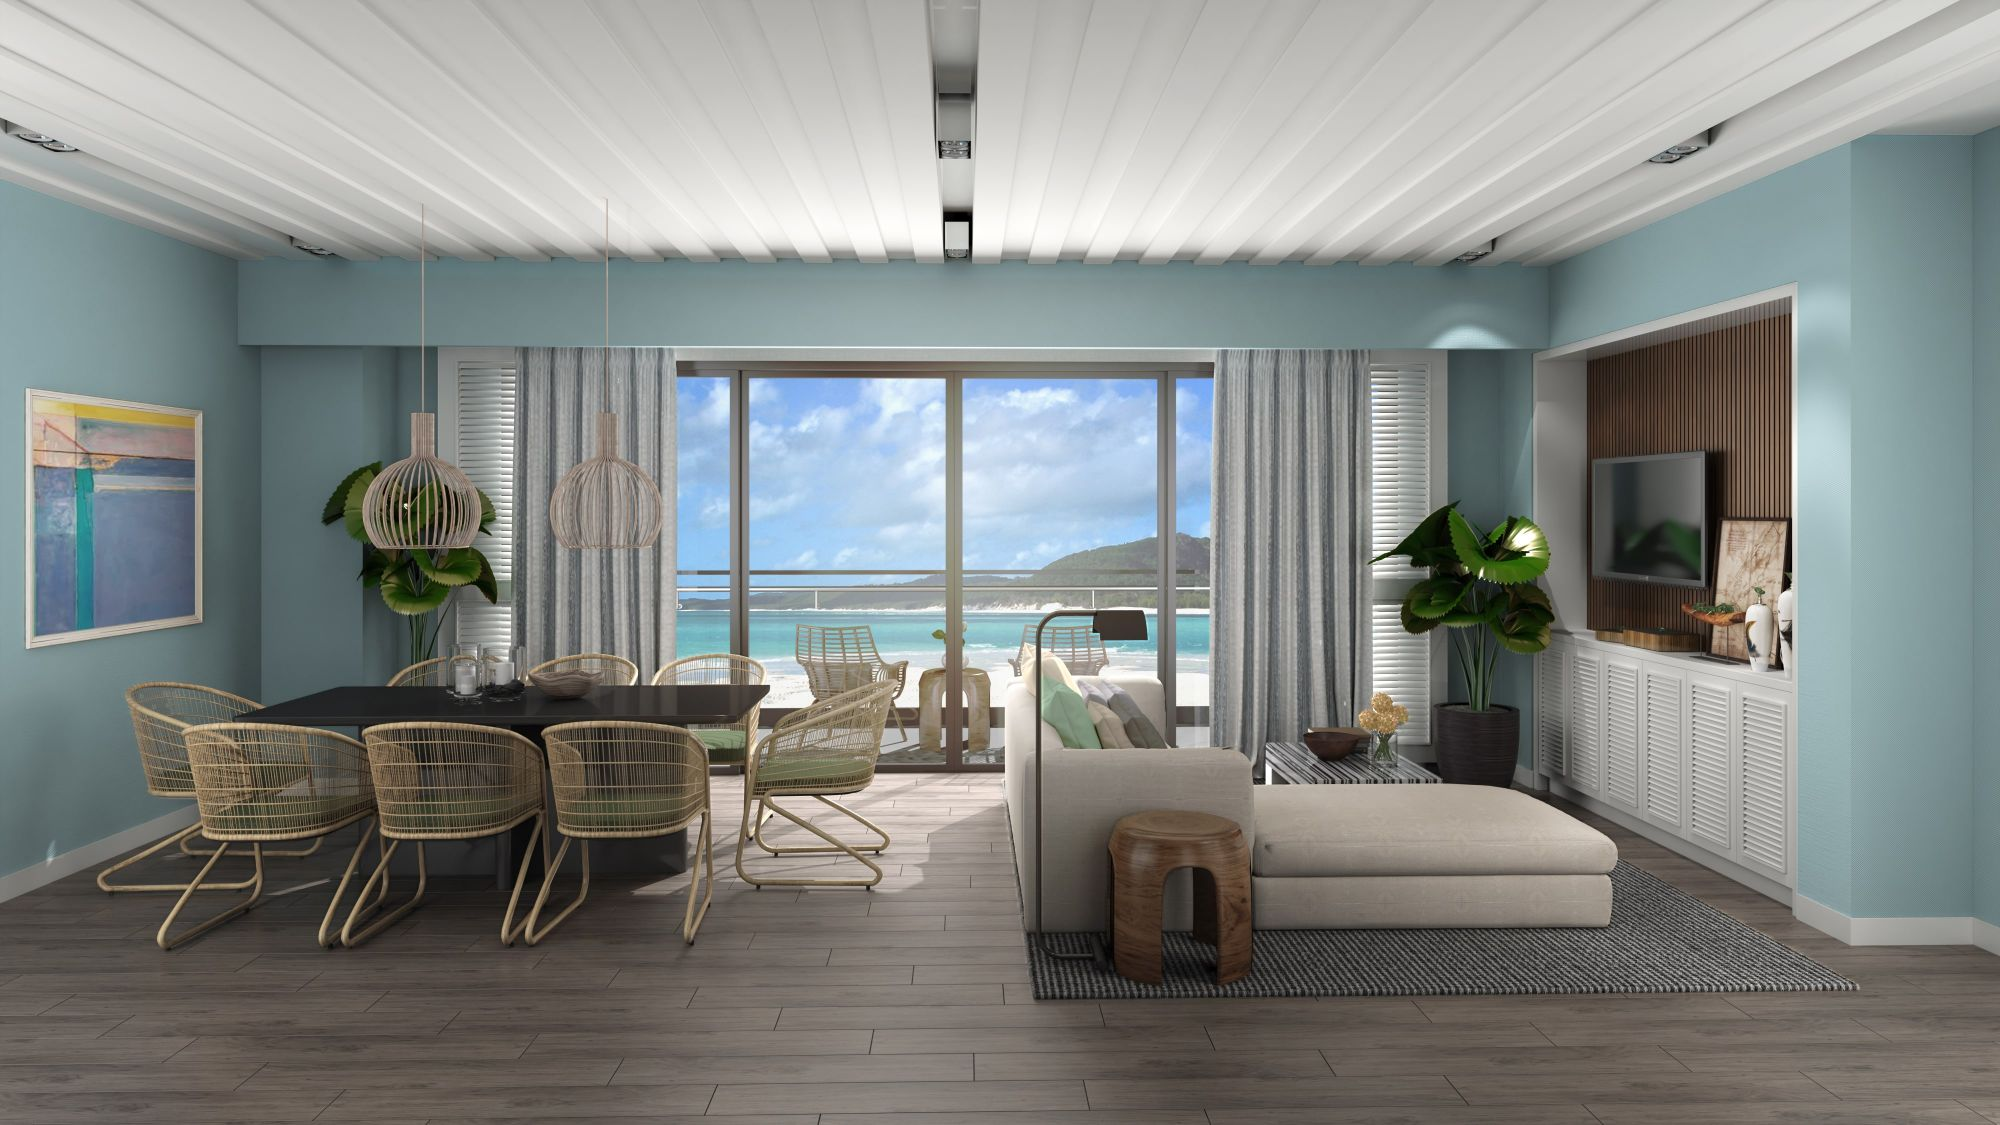 Serene views from your beachside home